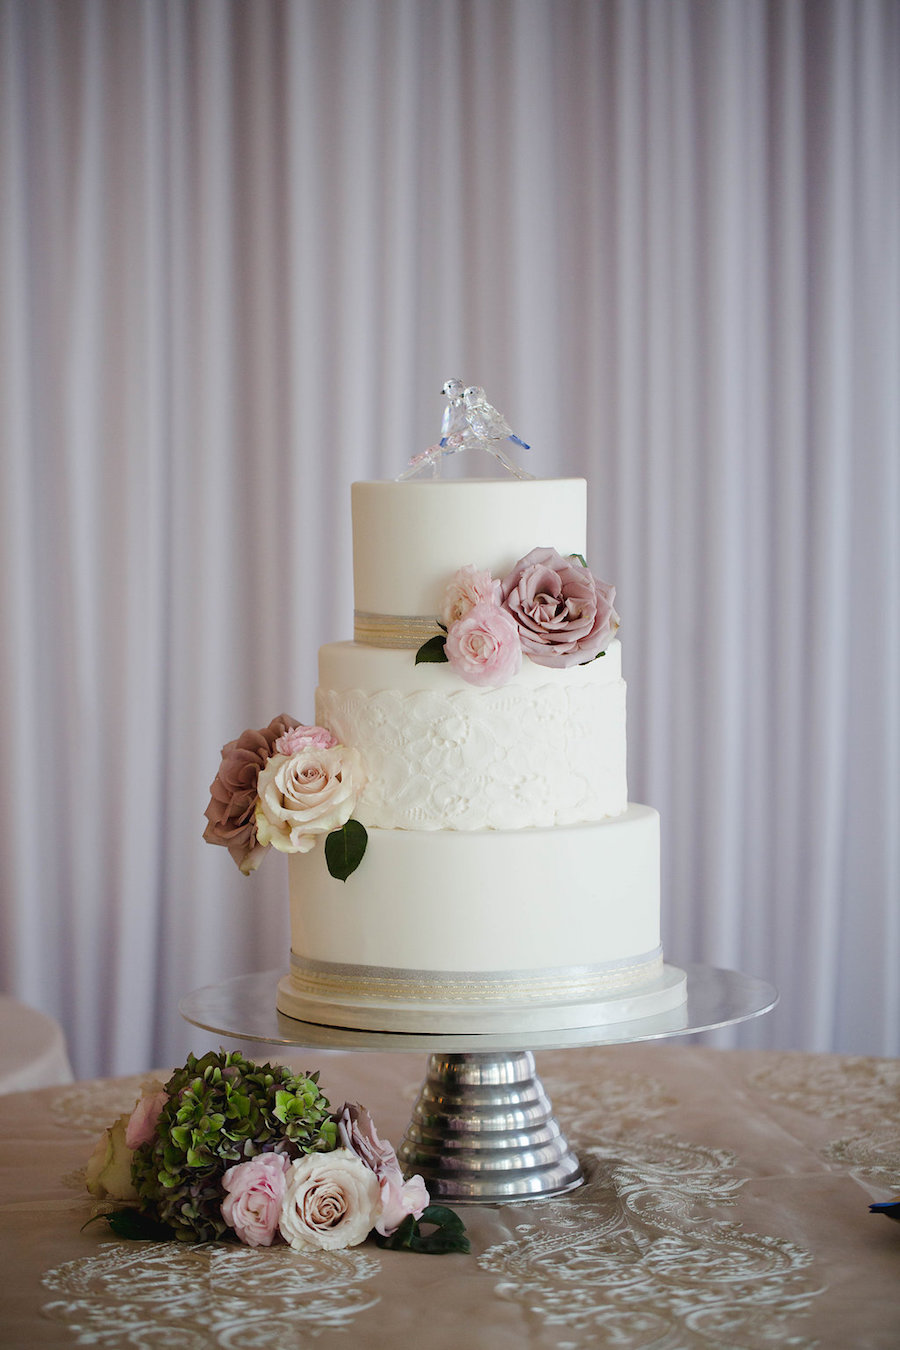 3 Tier White Wedding Cake With Dusty And Blush Pink Rose And Love